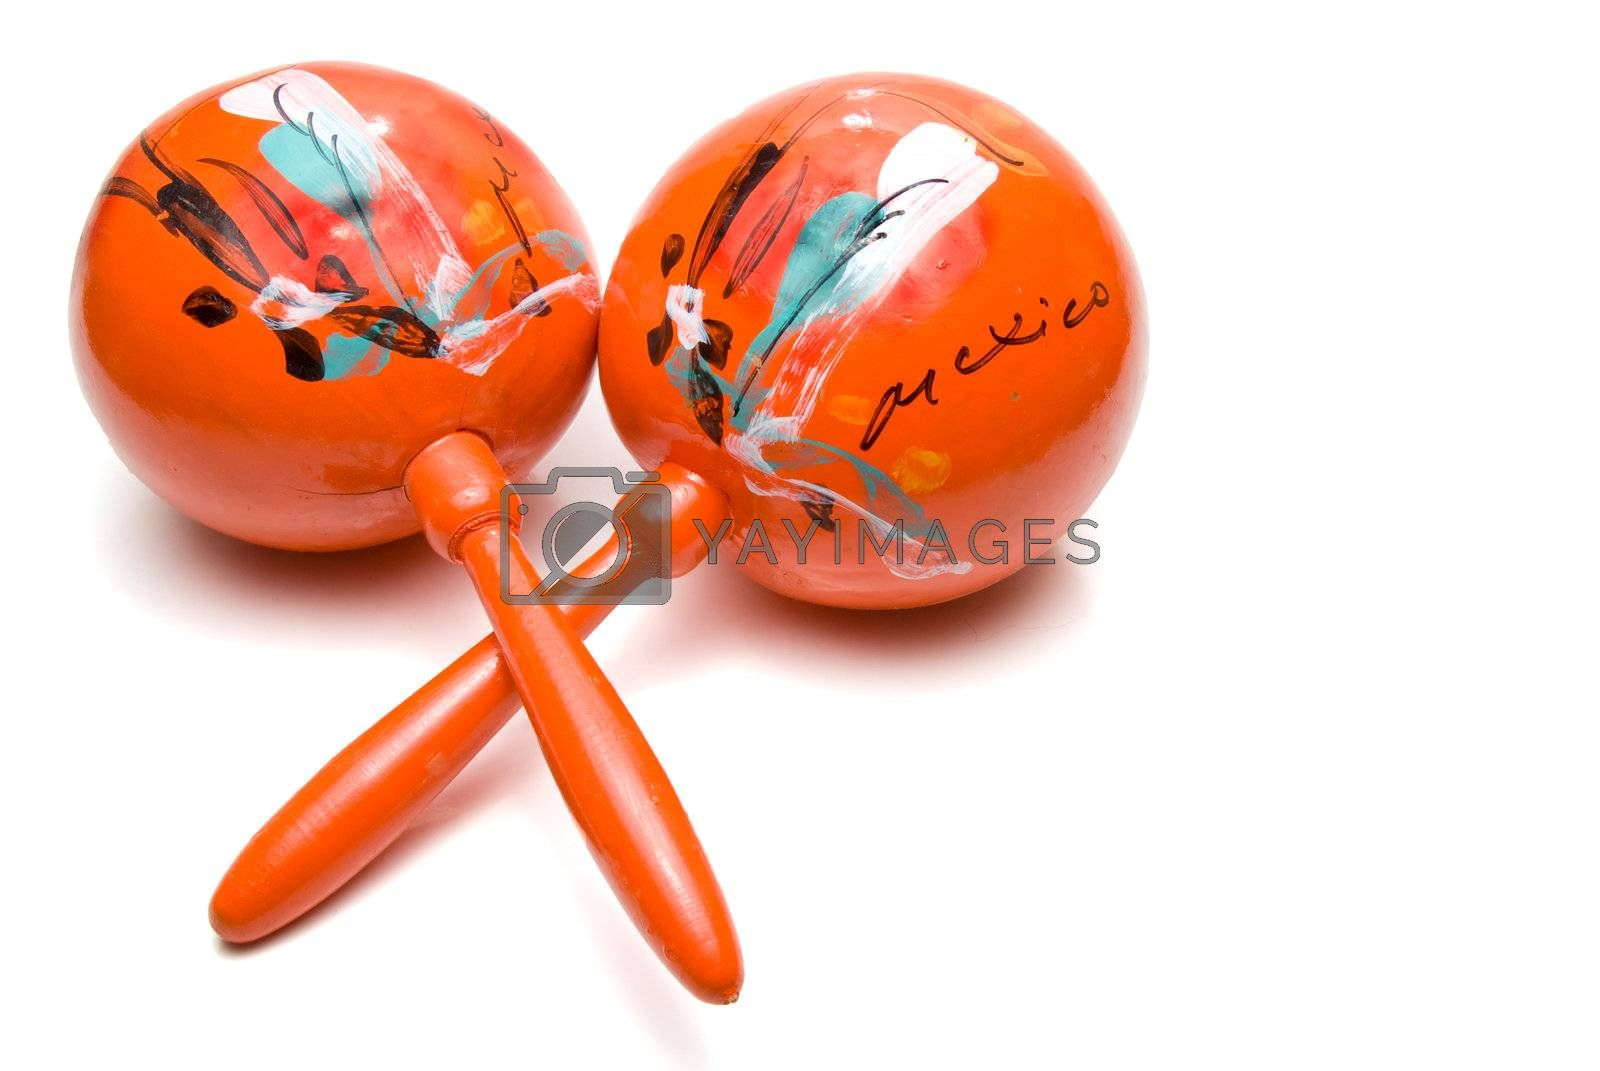 Royalty free image of Maracas by robeo